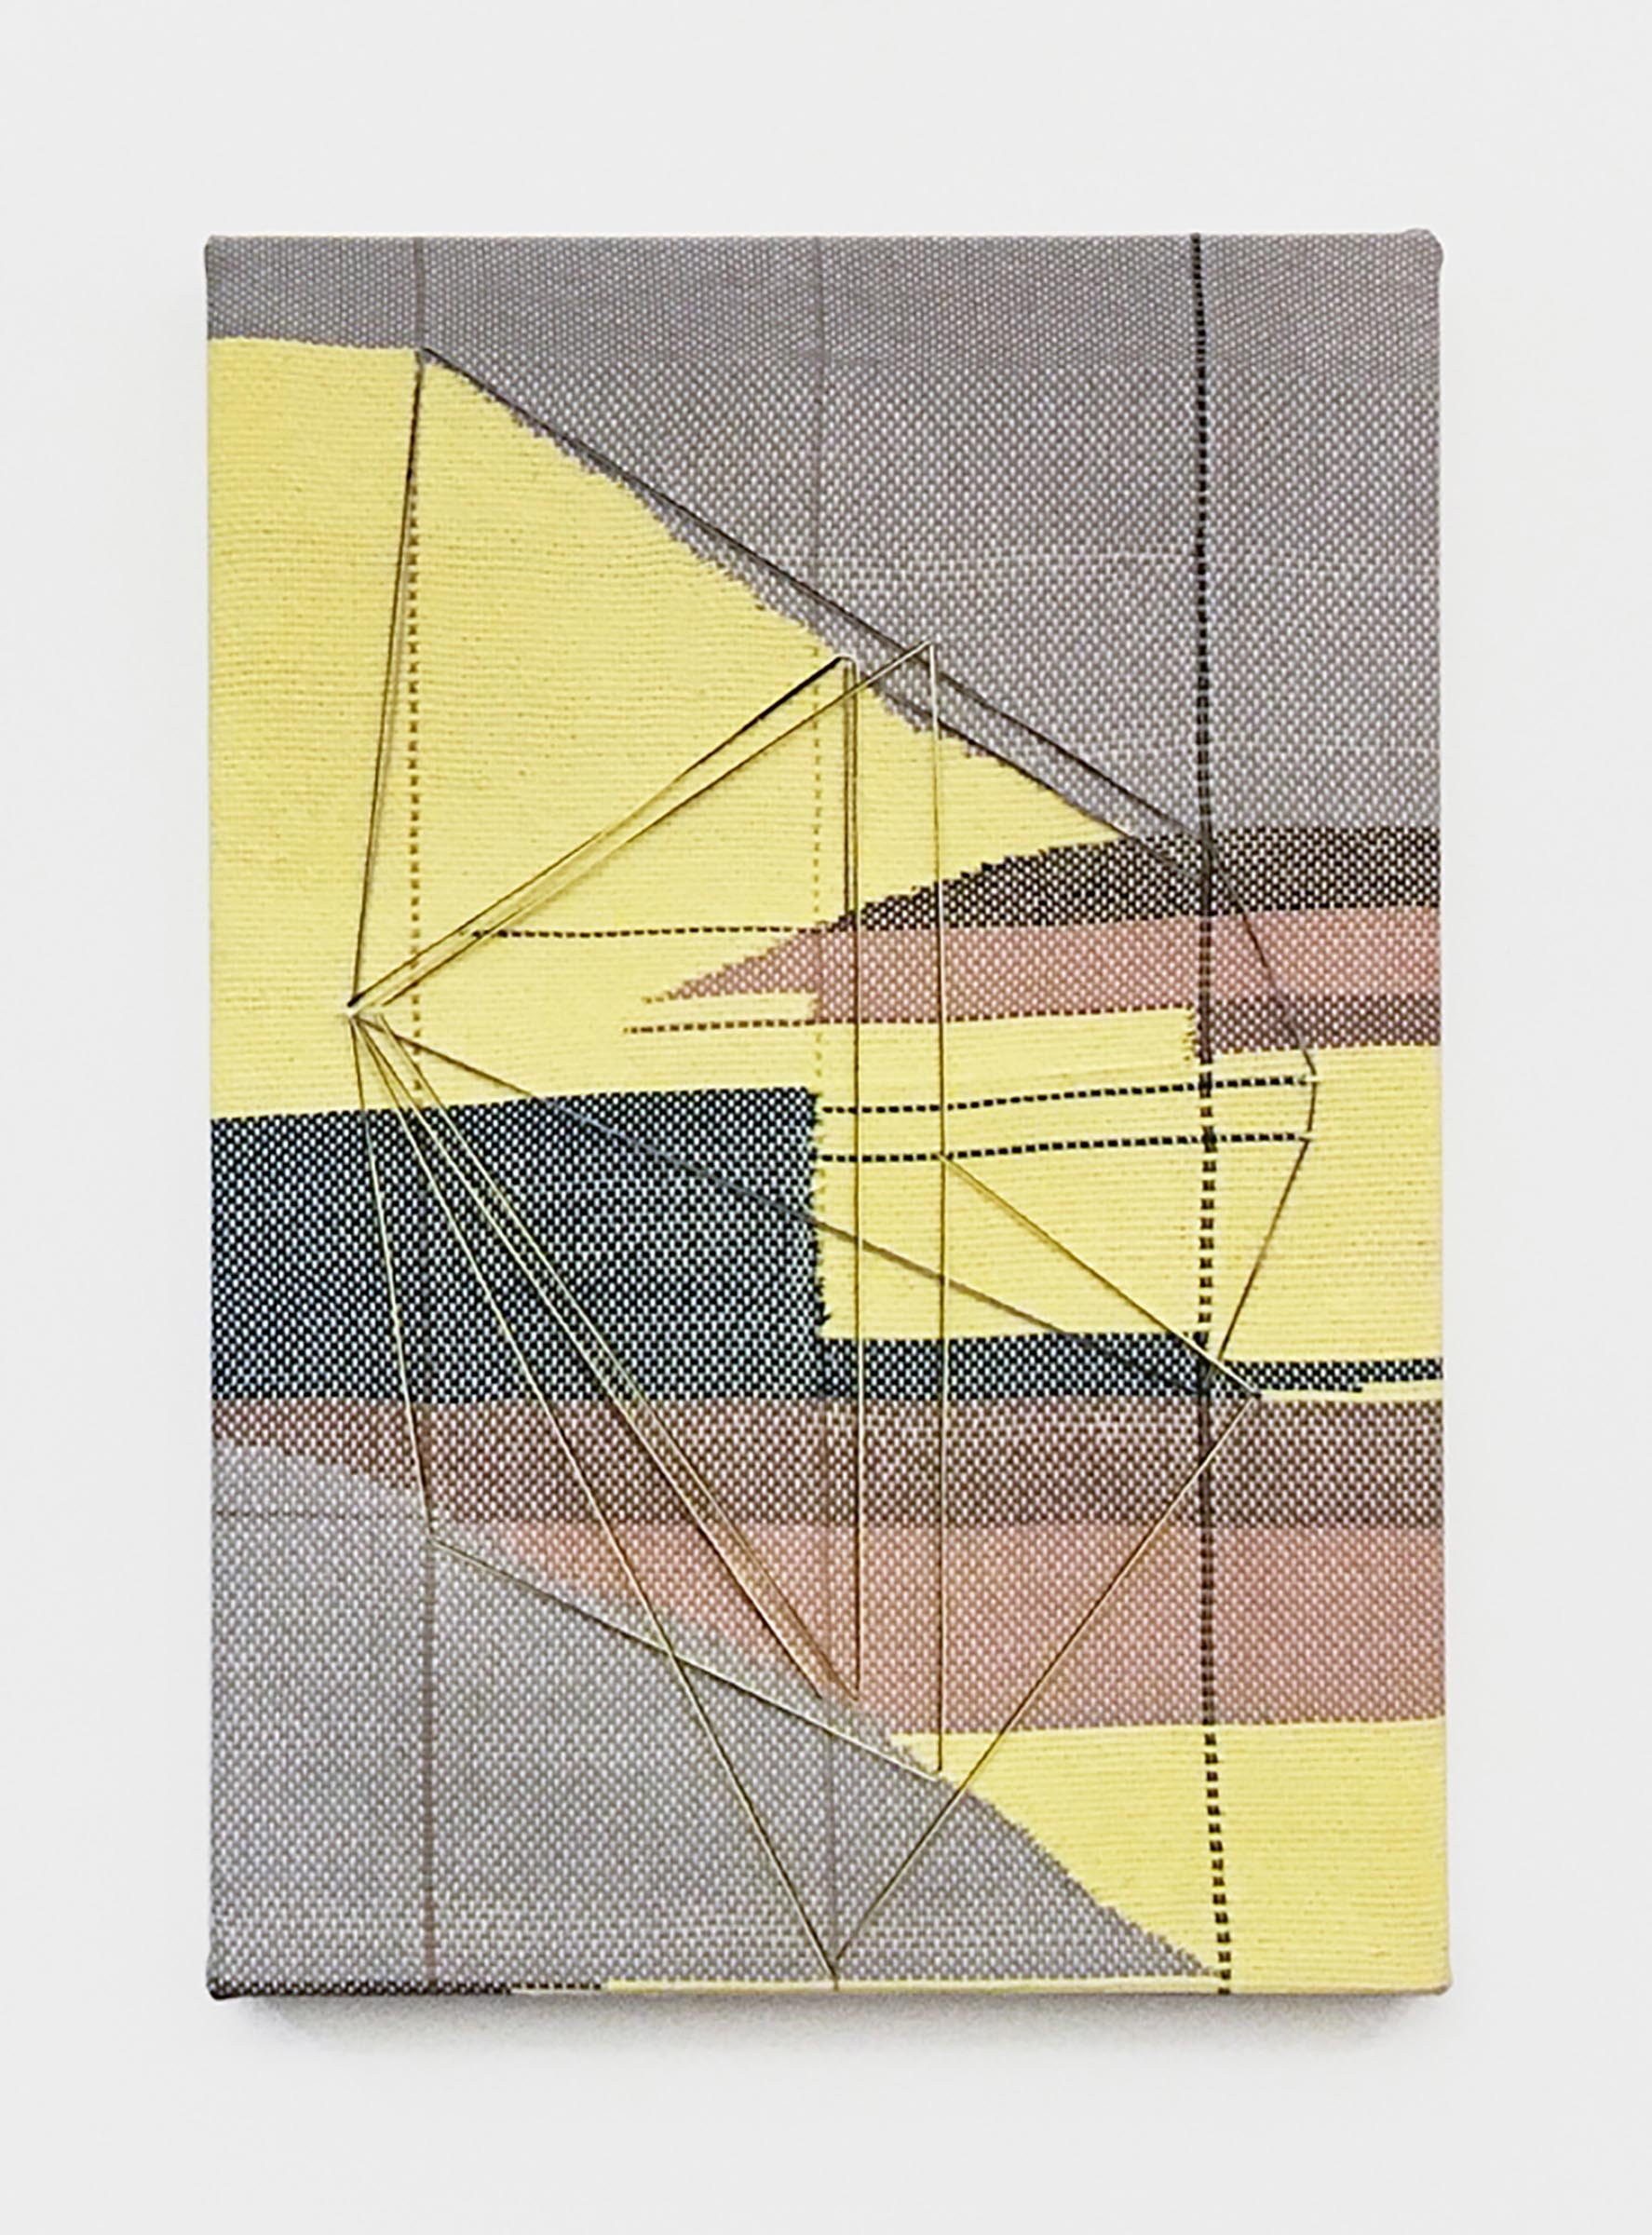 Mary Raap, For The Others, Handwoven cotton, silk, and acrylic medium over canvas, 20 x 14 x 1.5 in, 2019